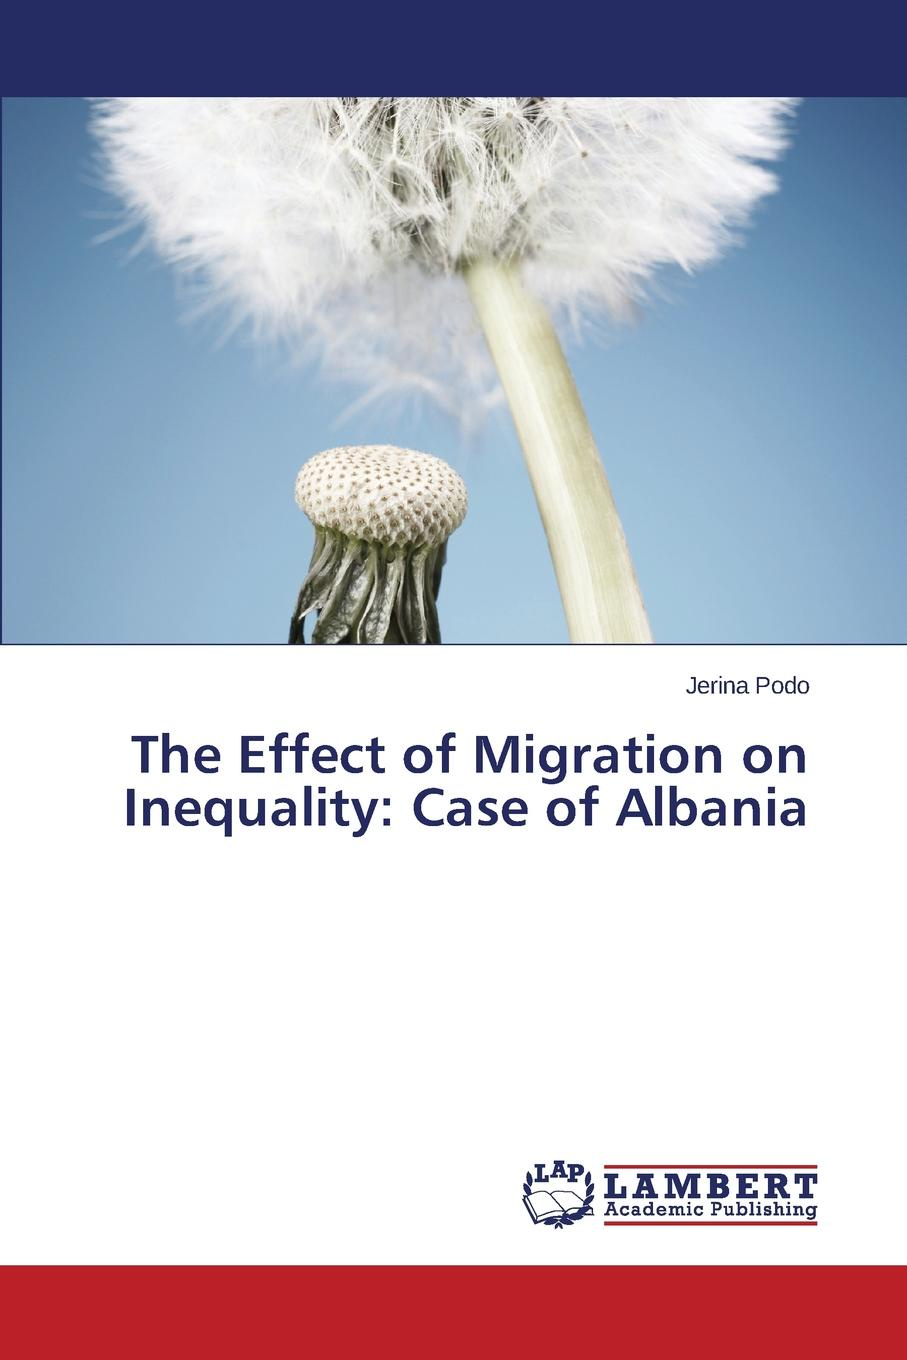 Podo Jerina The Effect of Migration on Inequality. Case of Albania goran therborn the killing fields of inequality